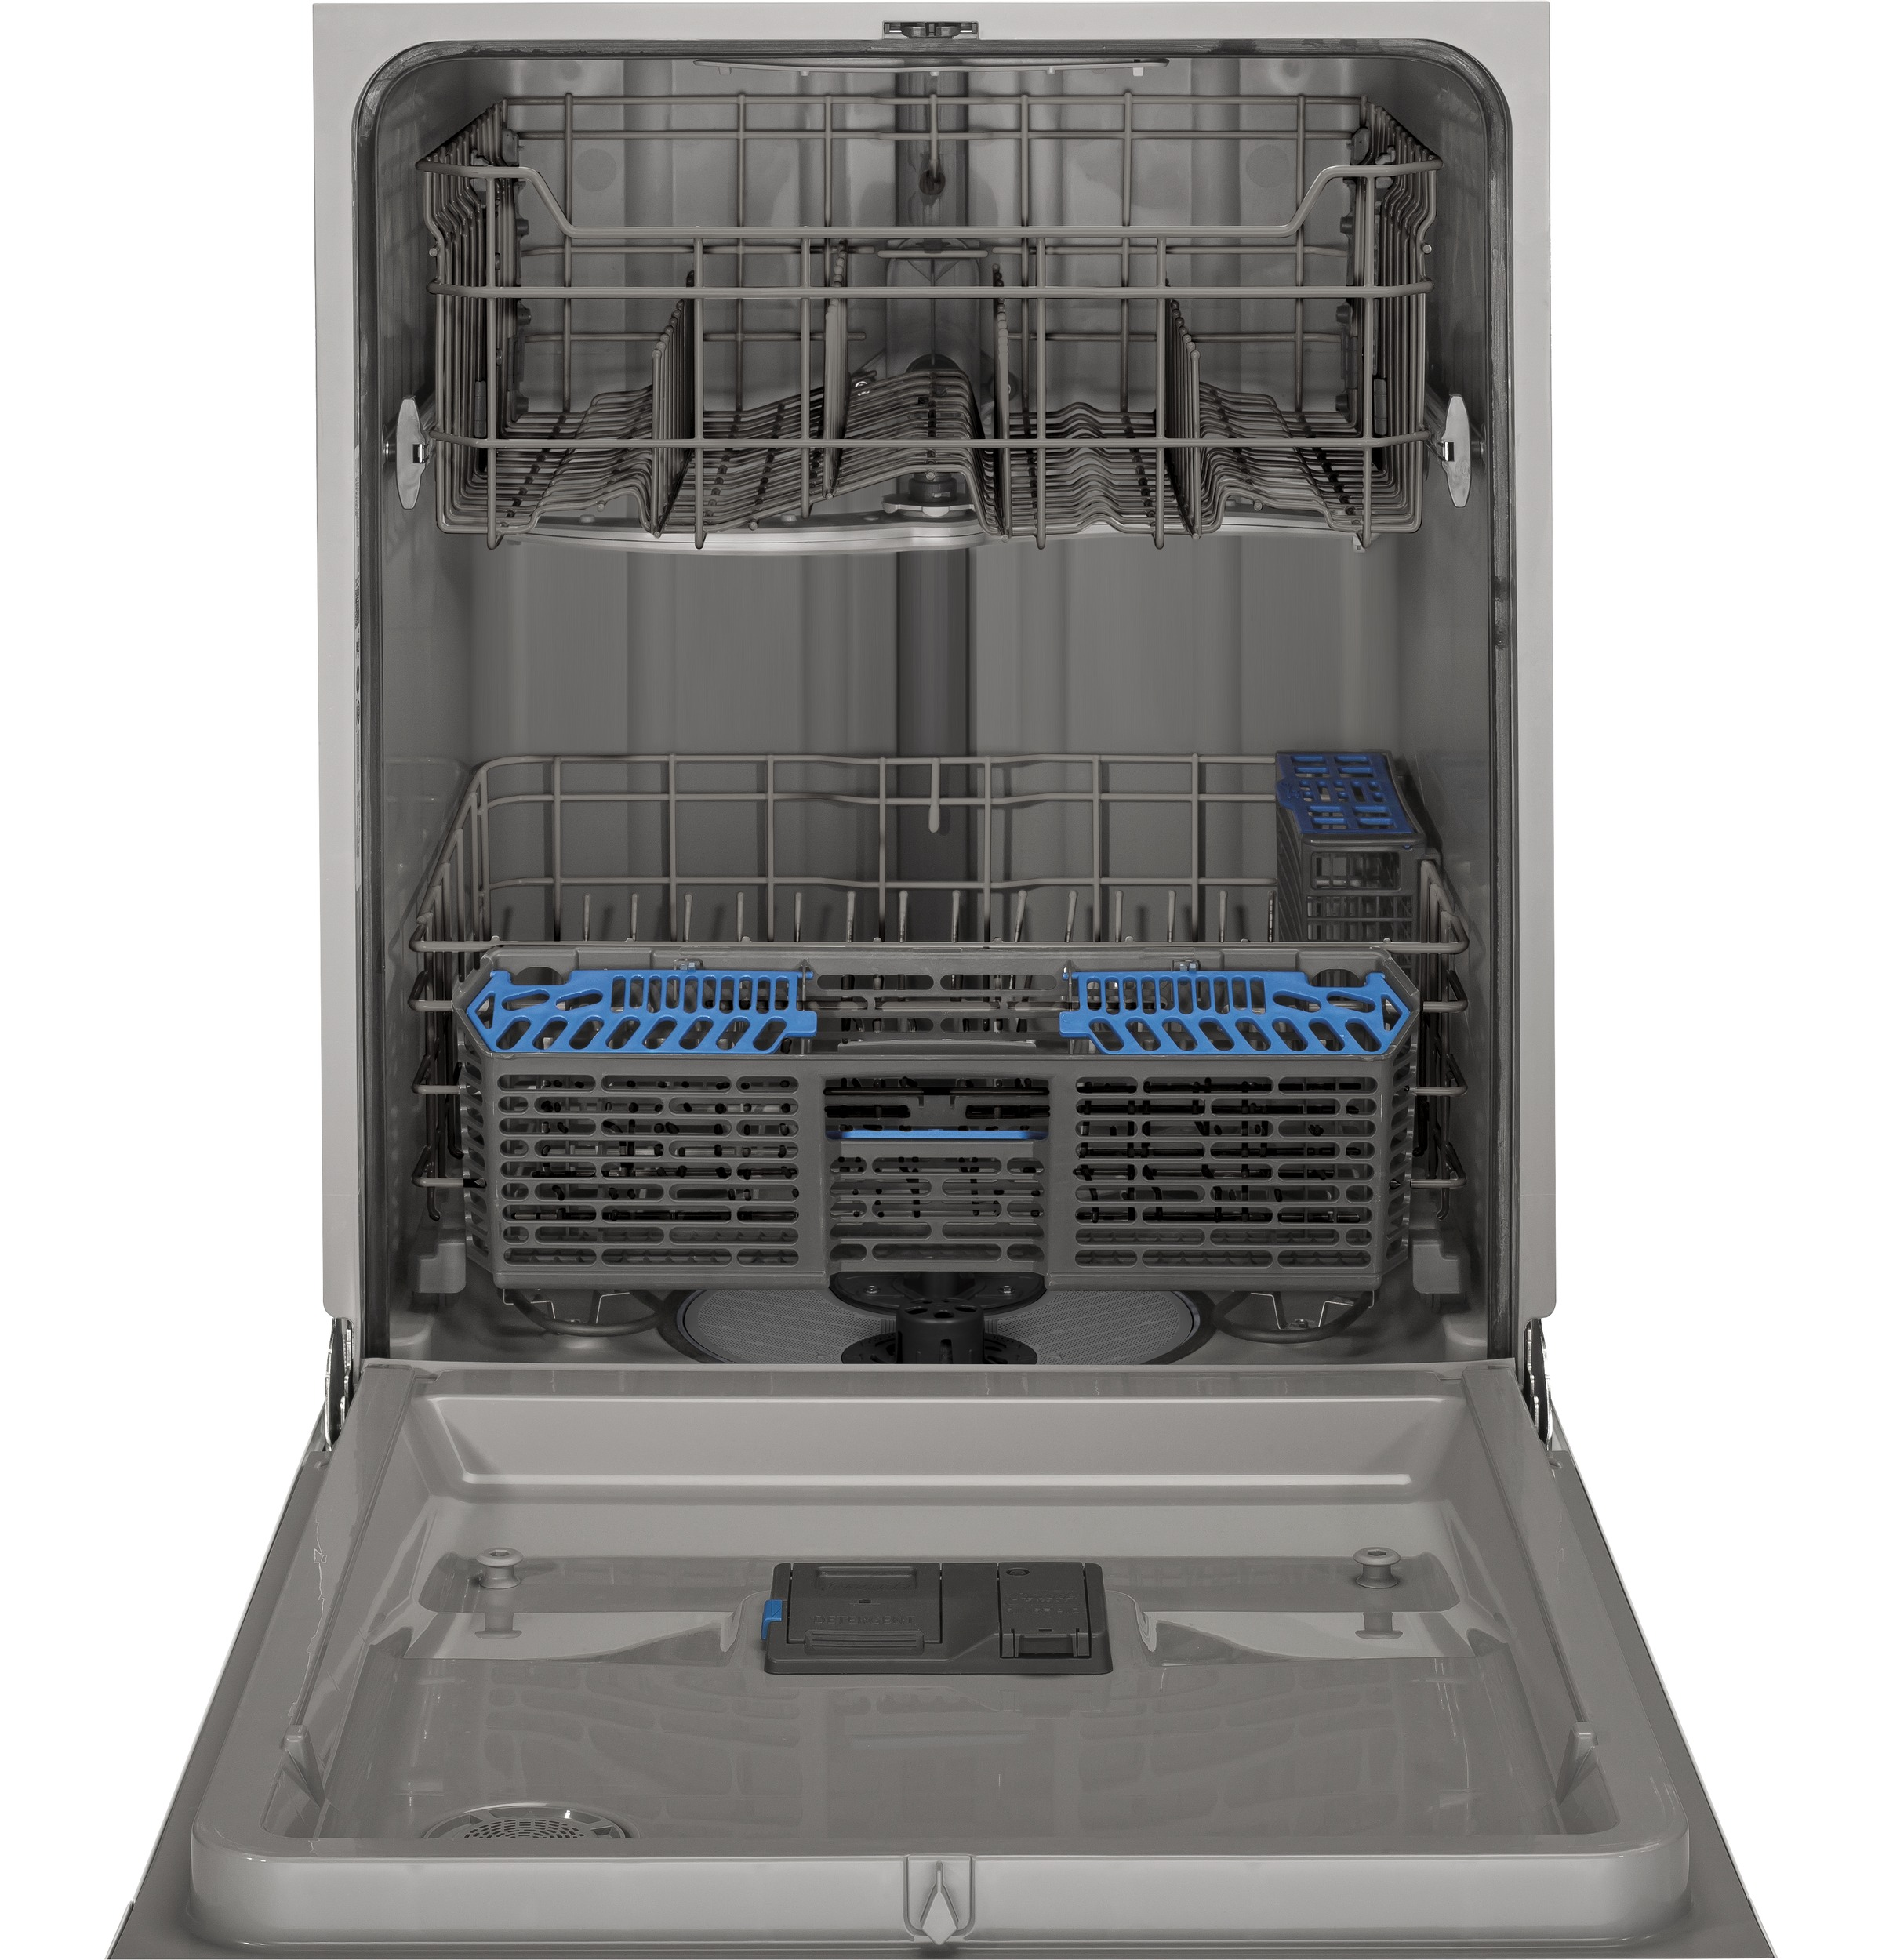 General Electric Dishwasher Troubleshooting Gear Dishwasher With Front Controls Gdf510pgdww Ge Appliances